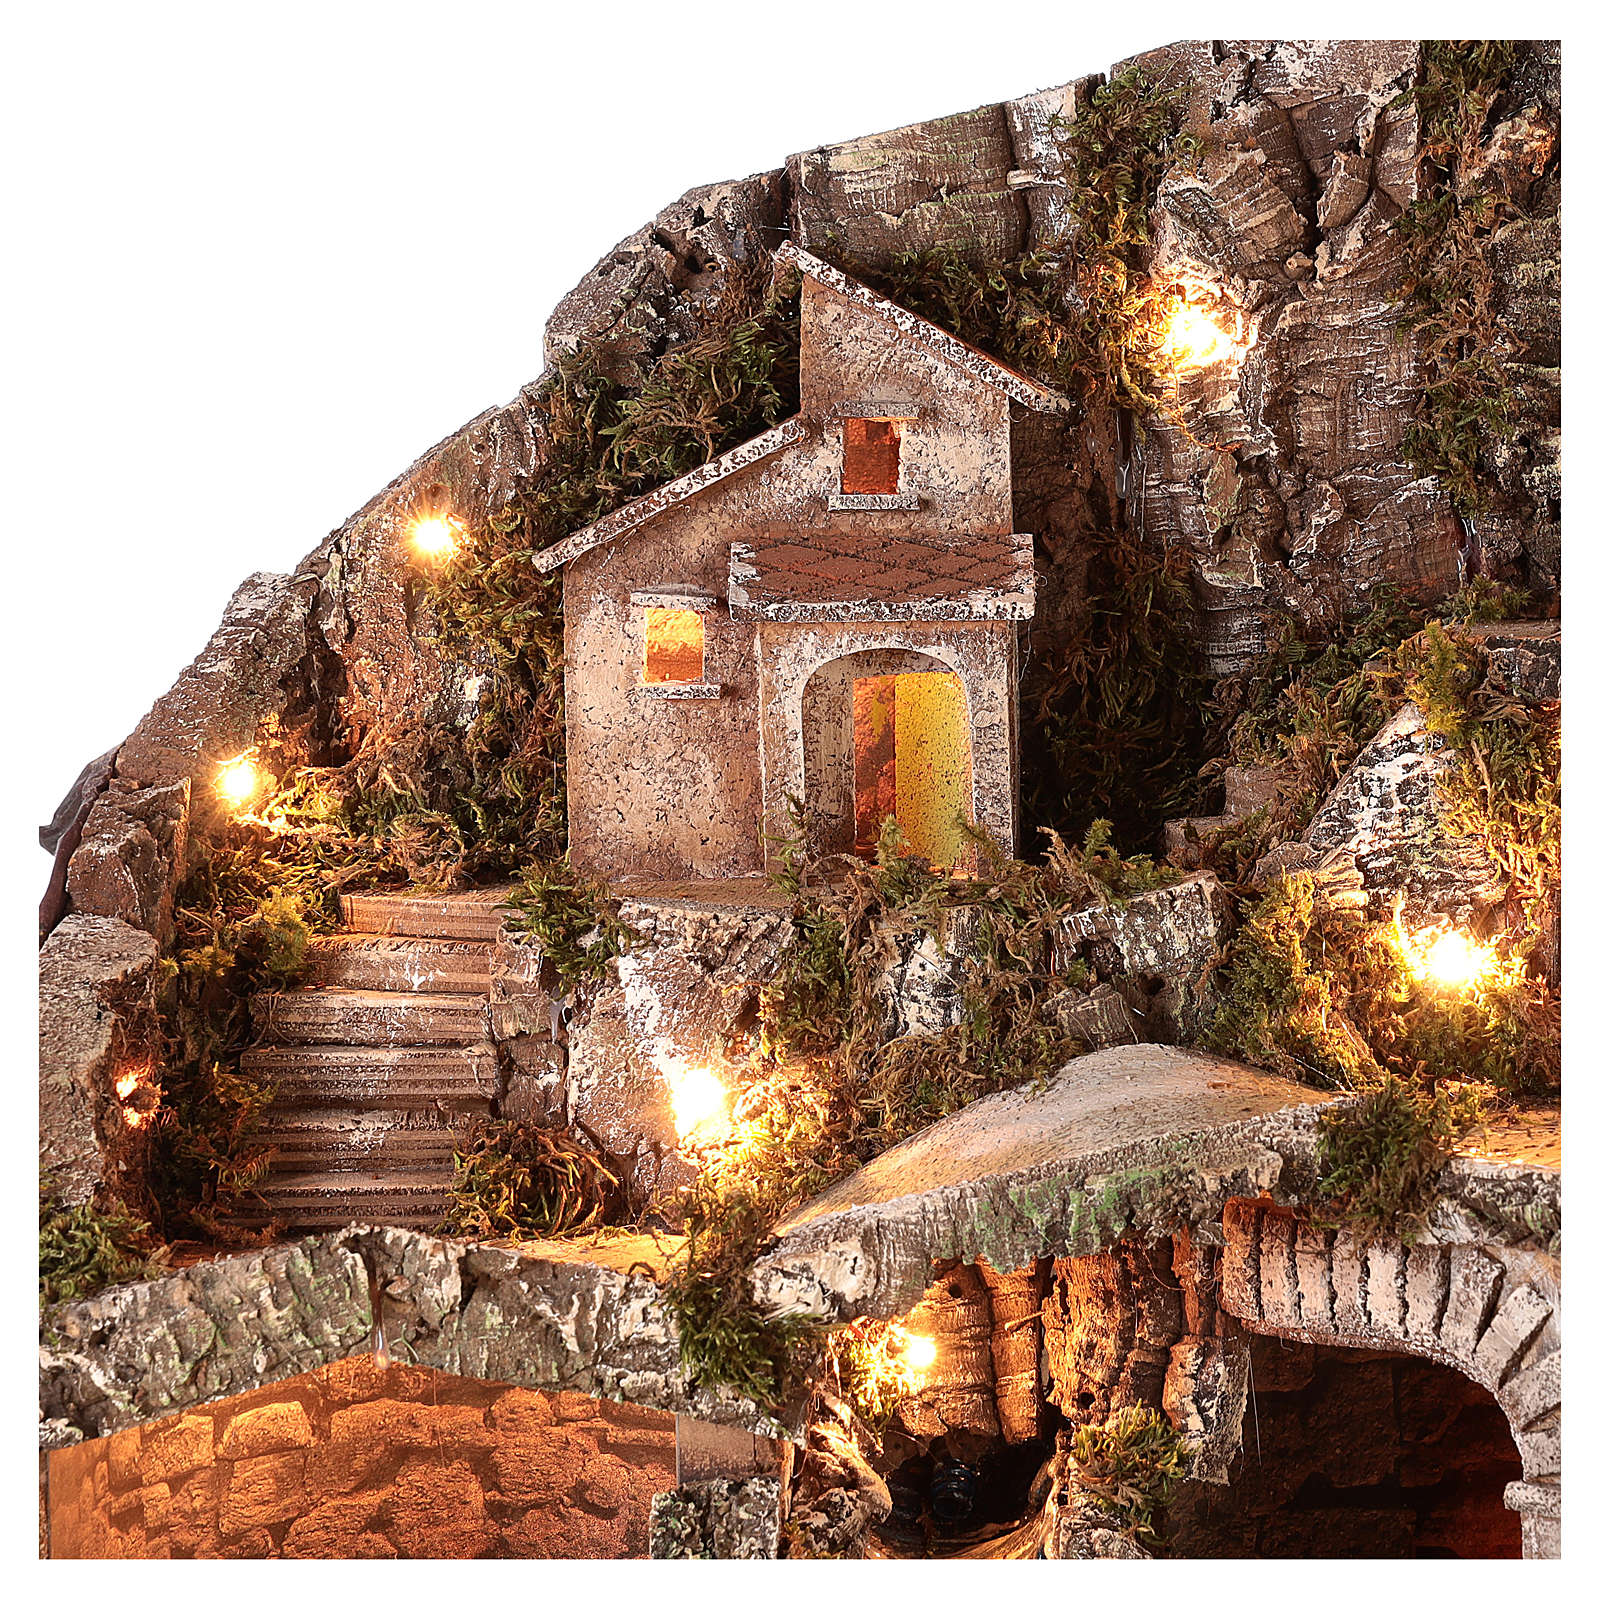 Nativity scene setting with water stream and moving mill for 8-10 cm Neapolitan Nativity scene 65x65x55 cm 4